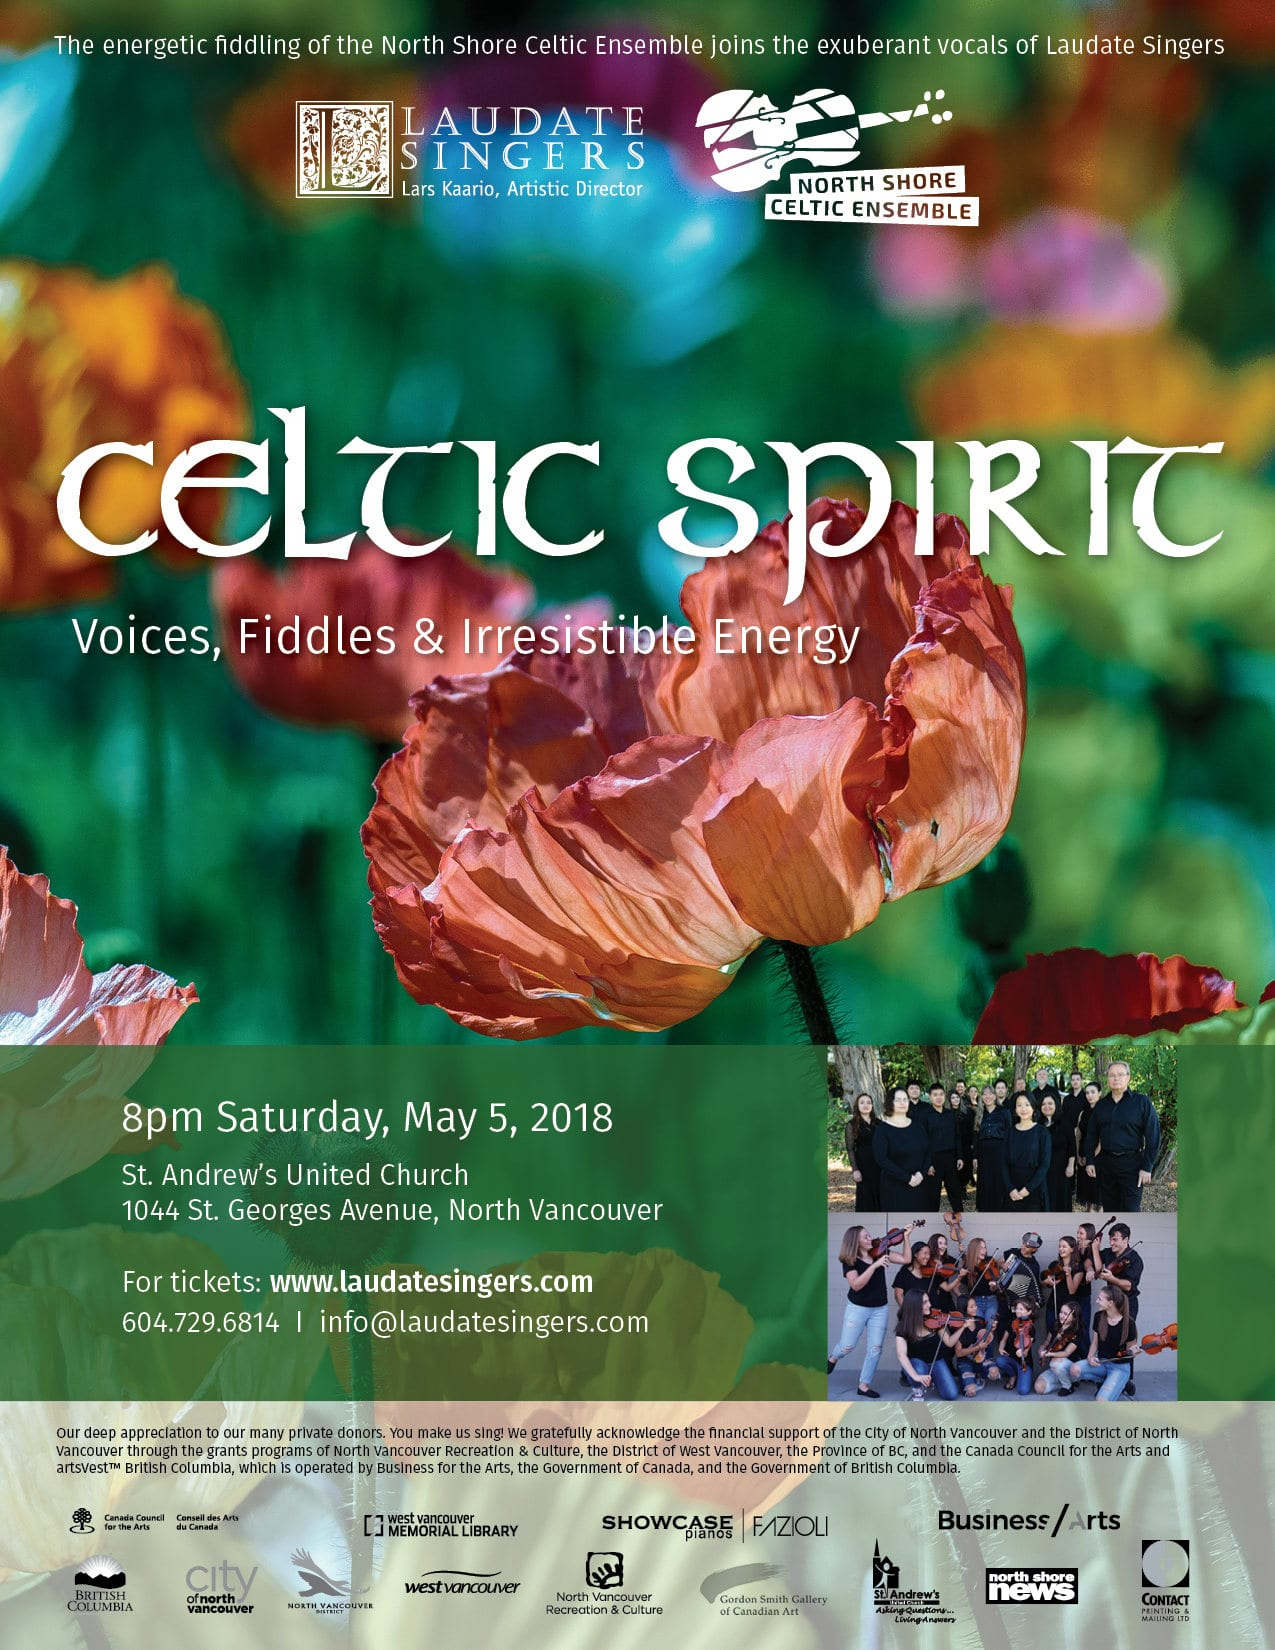 Celtic Spring ~ Voices, Fiddles & Irresistible Energy at St. Andrew's United Church